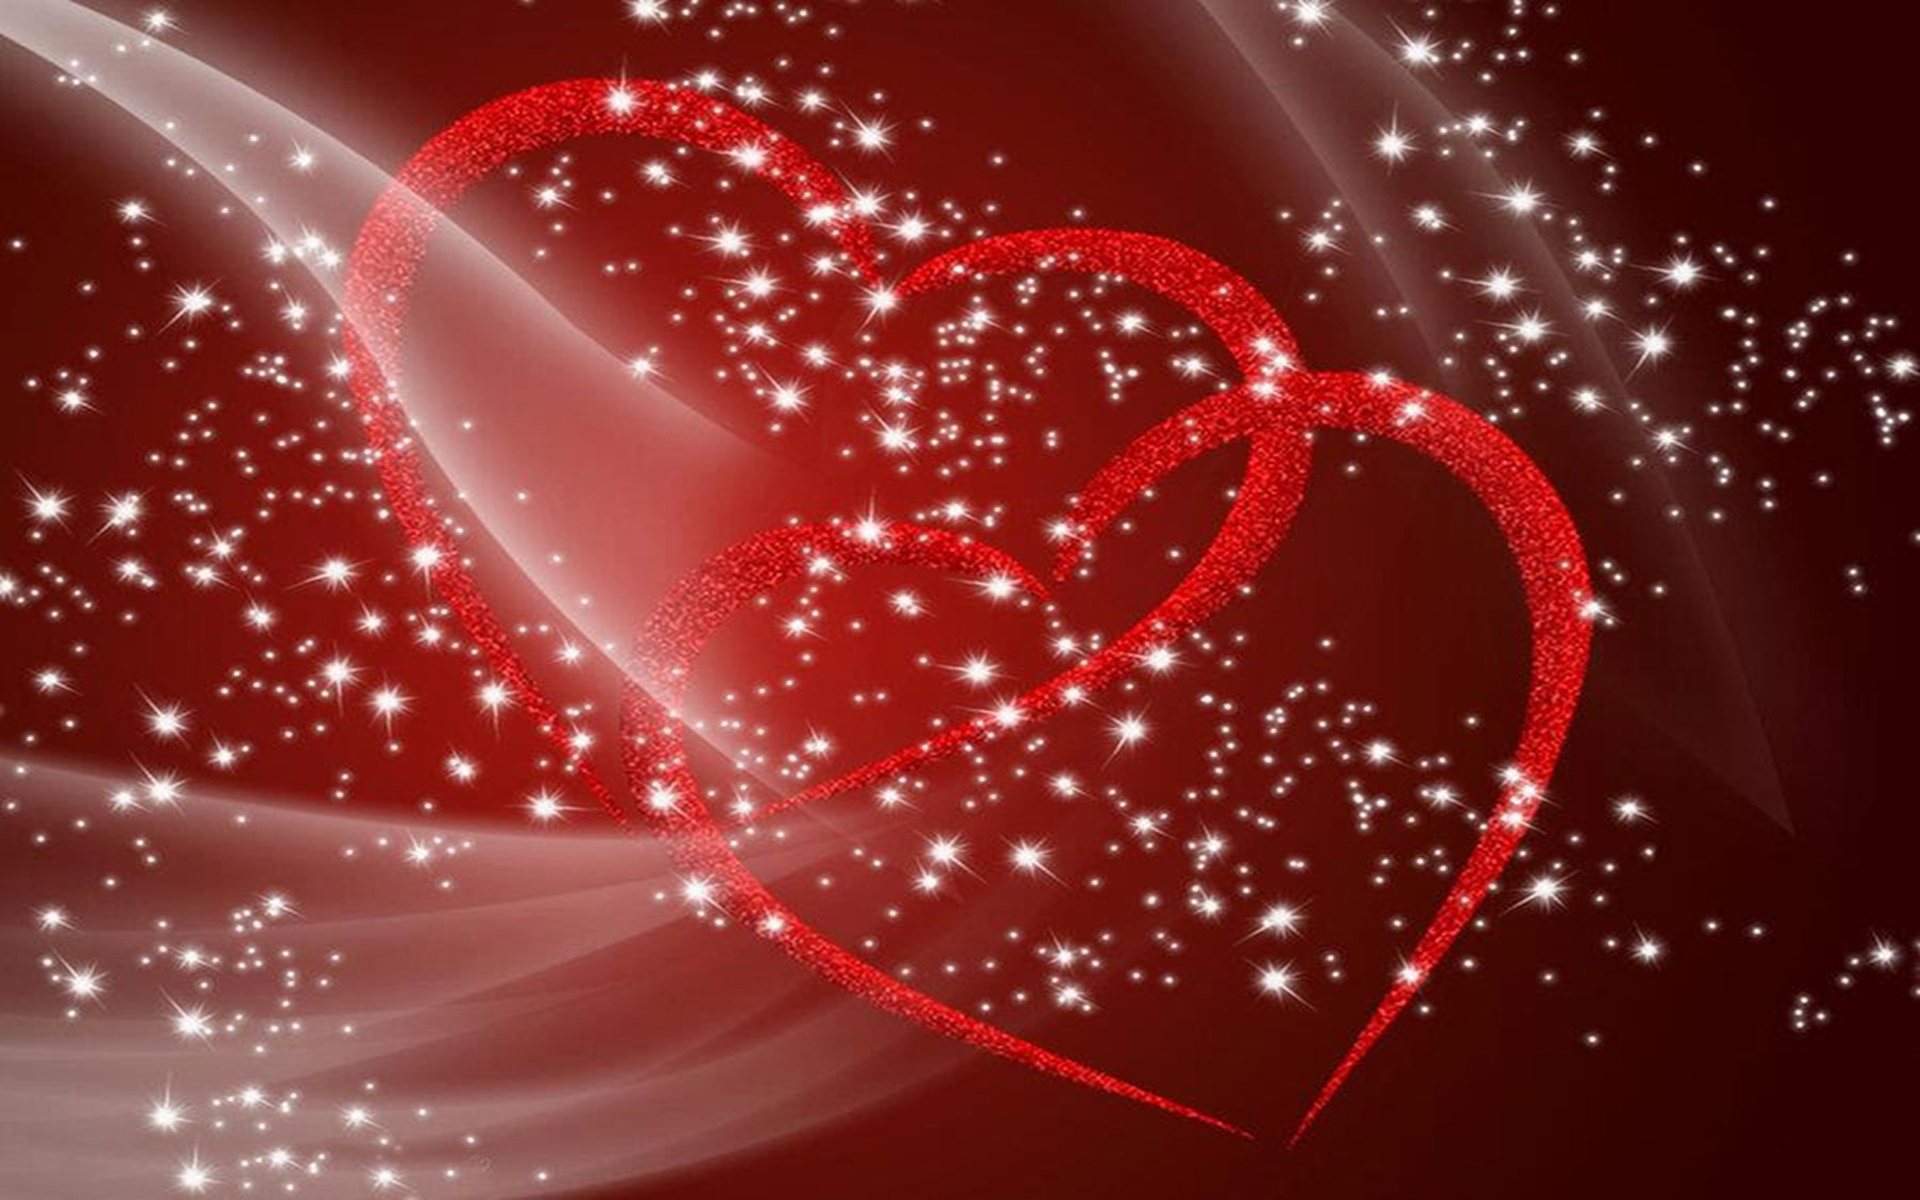 Animated Snake Wallpaper Red Hearts Sweethearts Love Of Glitter 1920 X1200 Hd